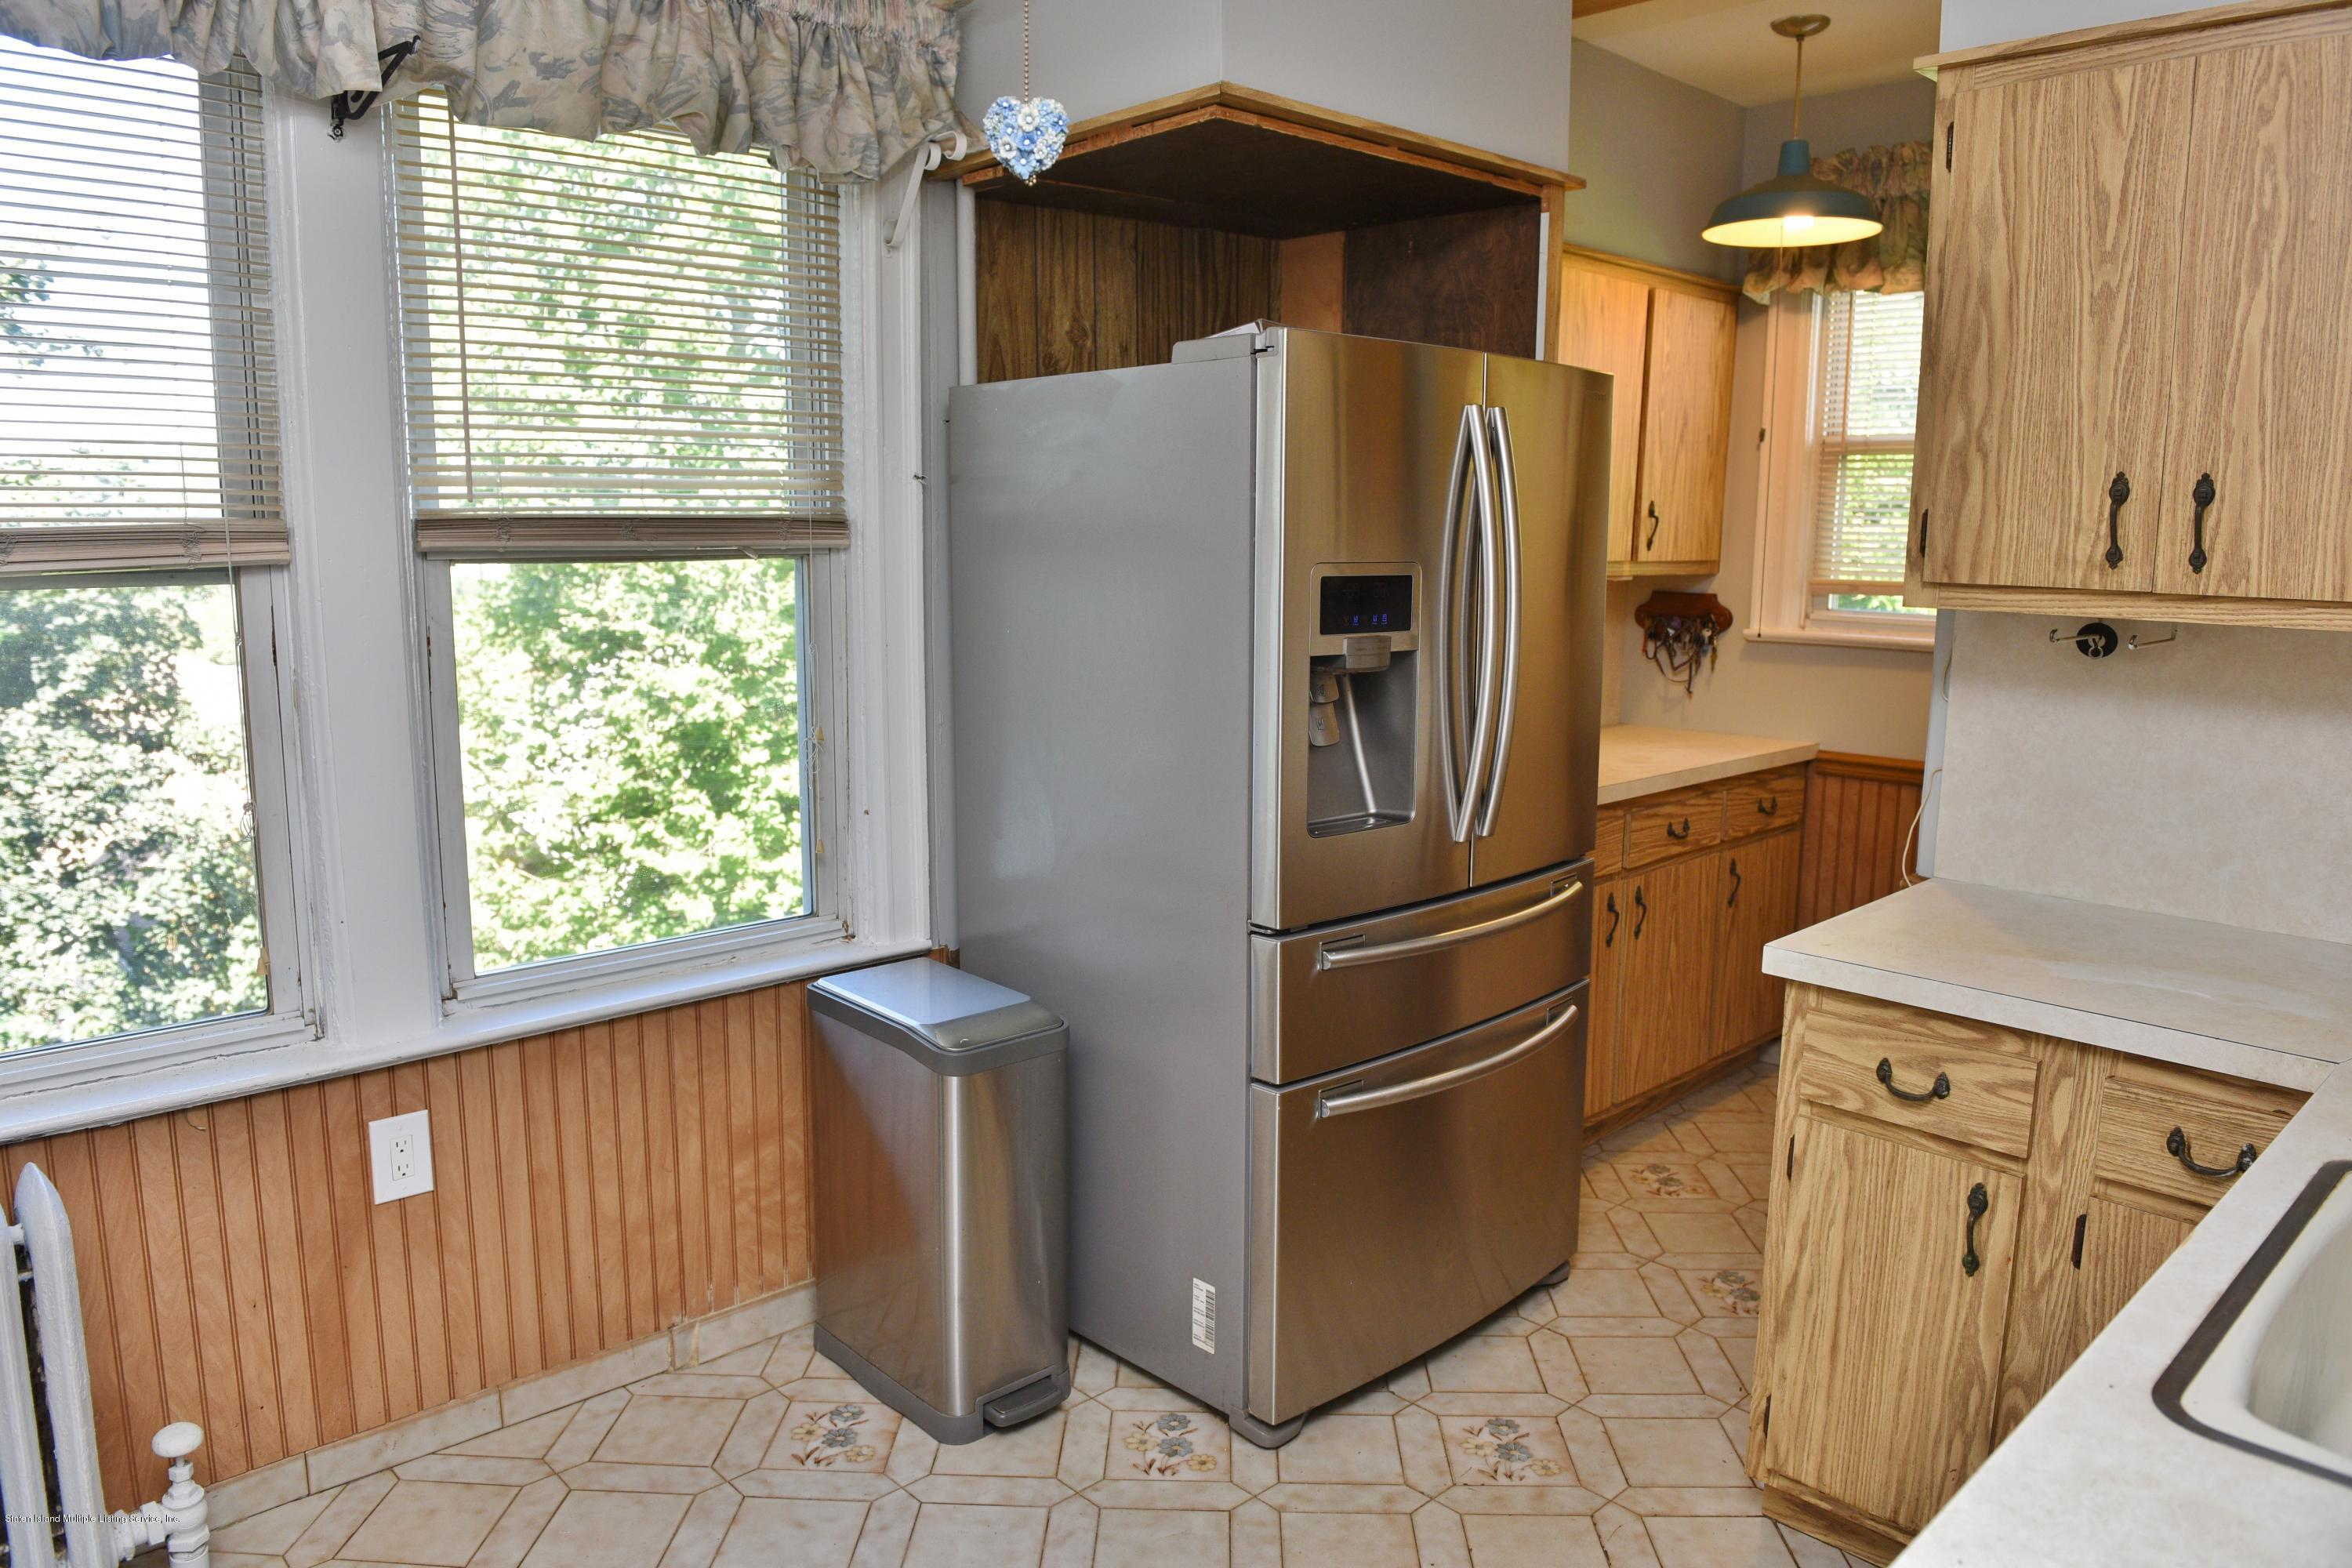 Single Family - Detached 55 Fort Hill Circle  Staten Island, NY 10301, MLS-1131735-21